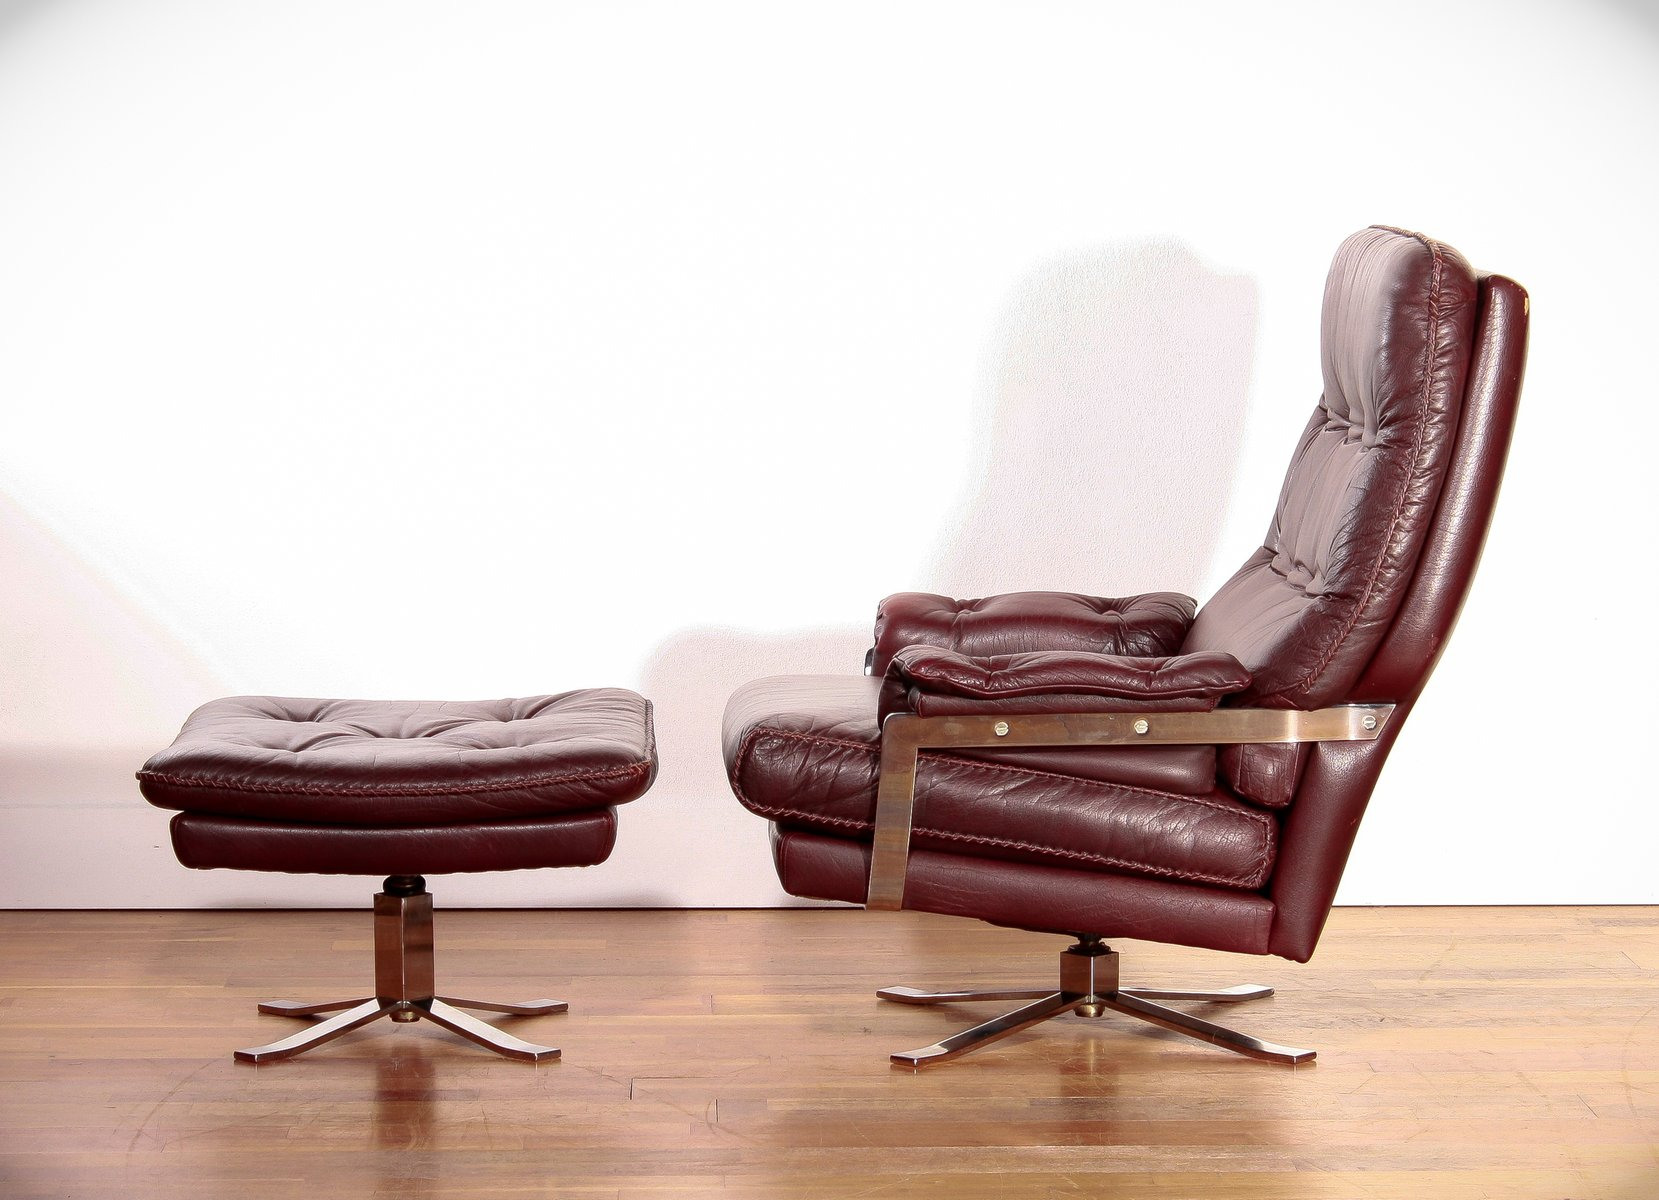 Lounge Chair & Ottoman by Arne Norell for Vatne M¸bler 1960s for